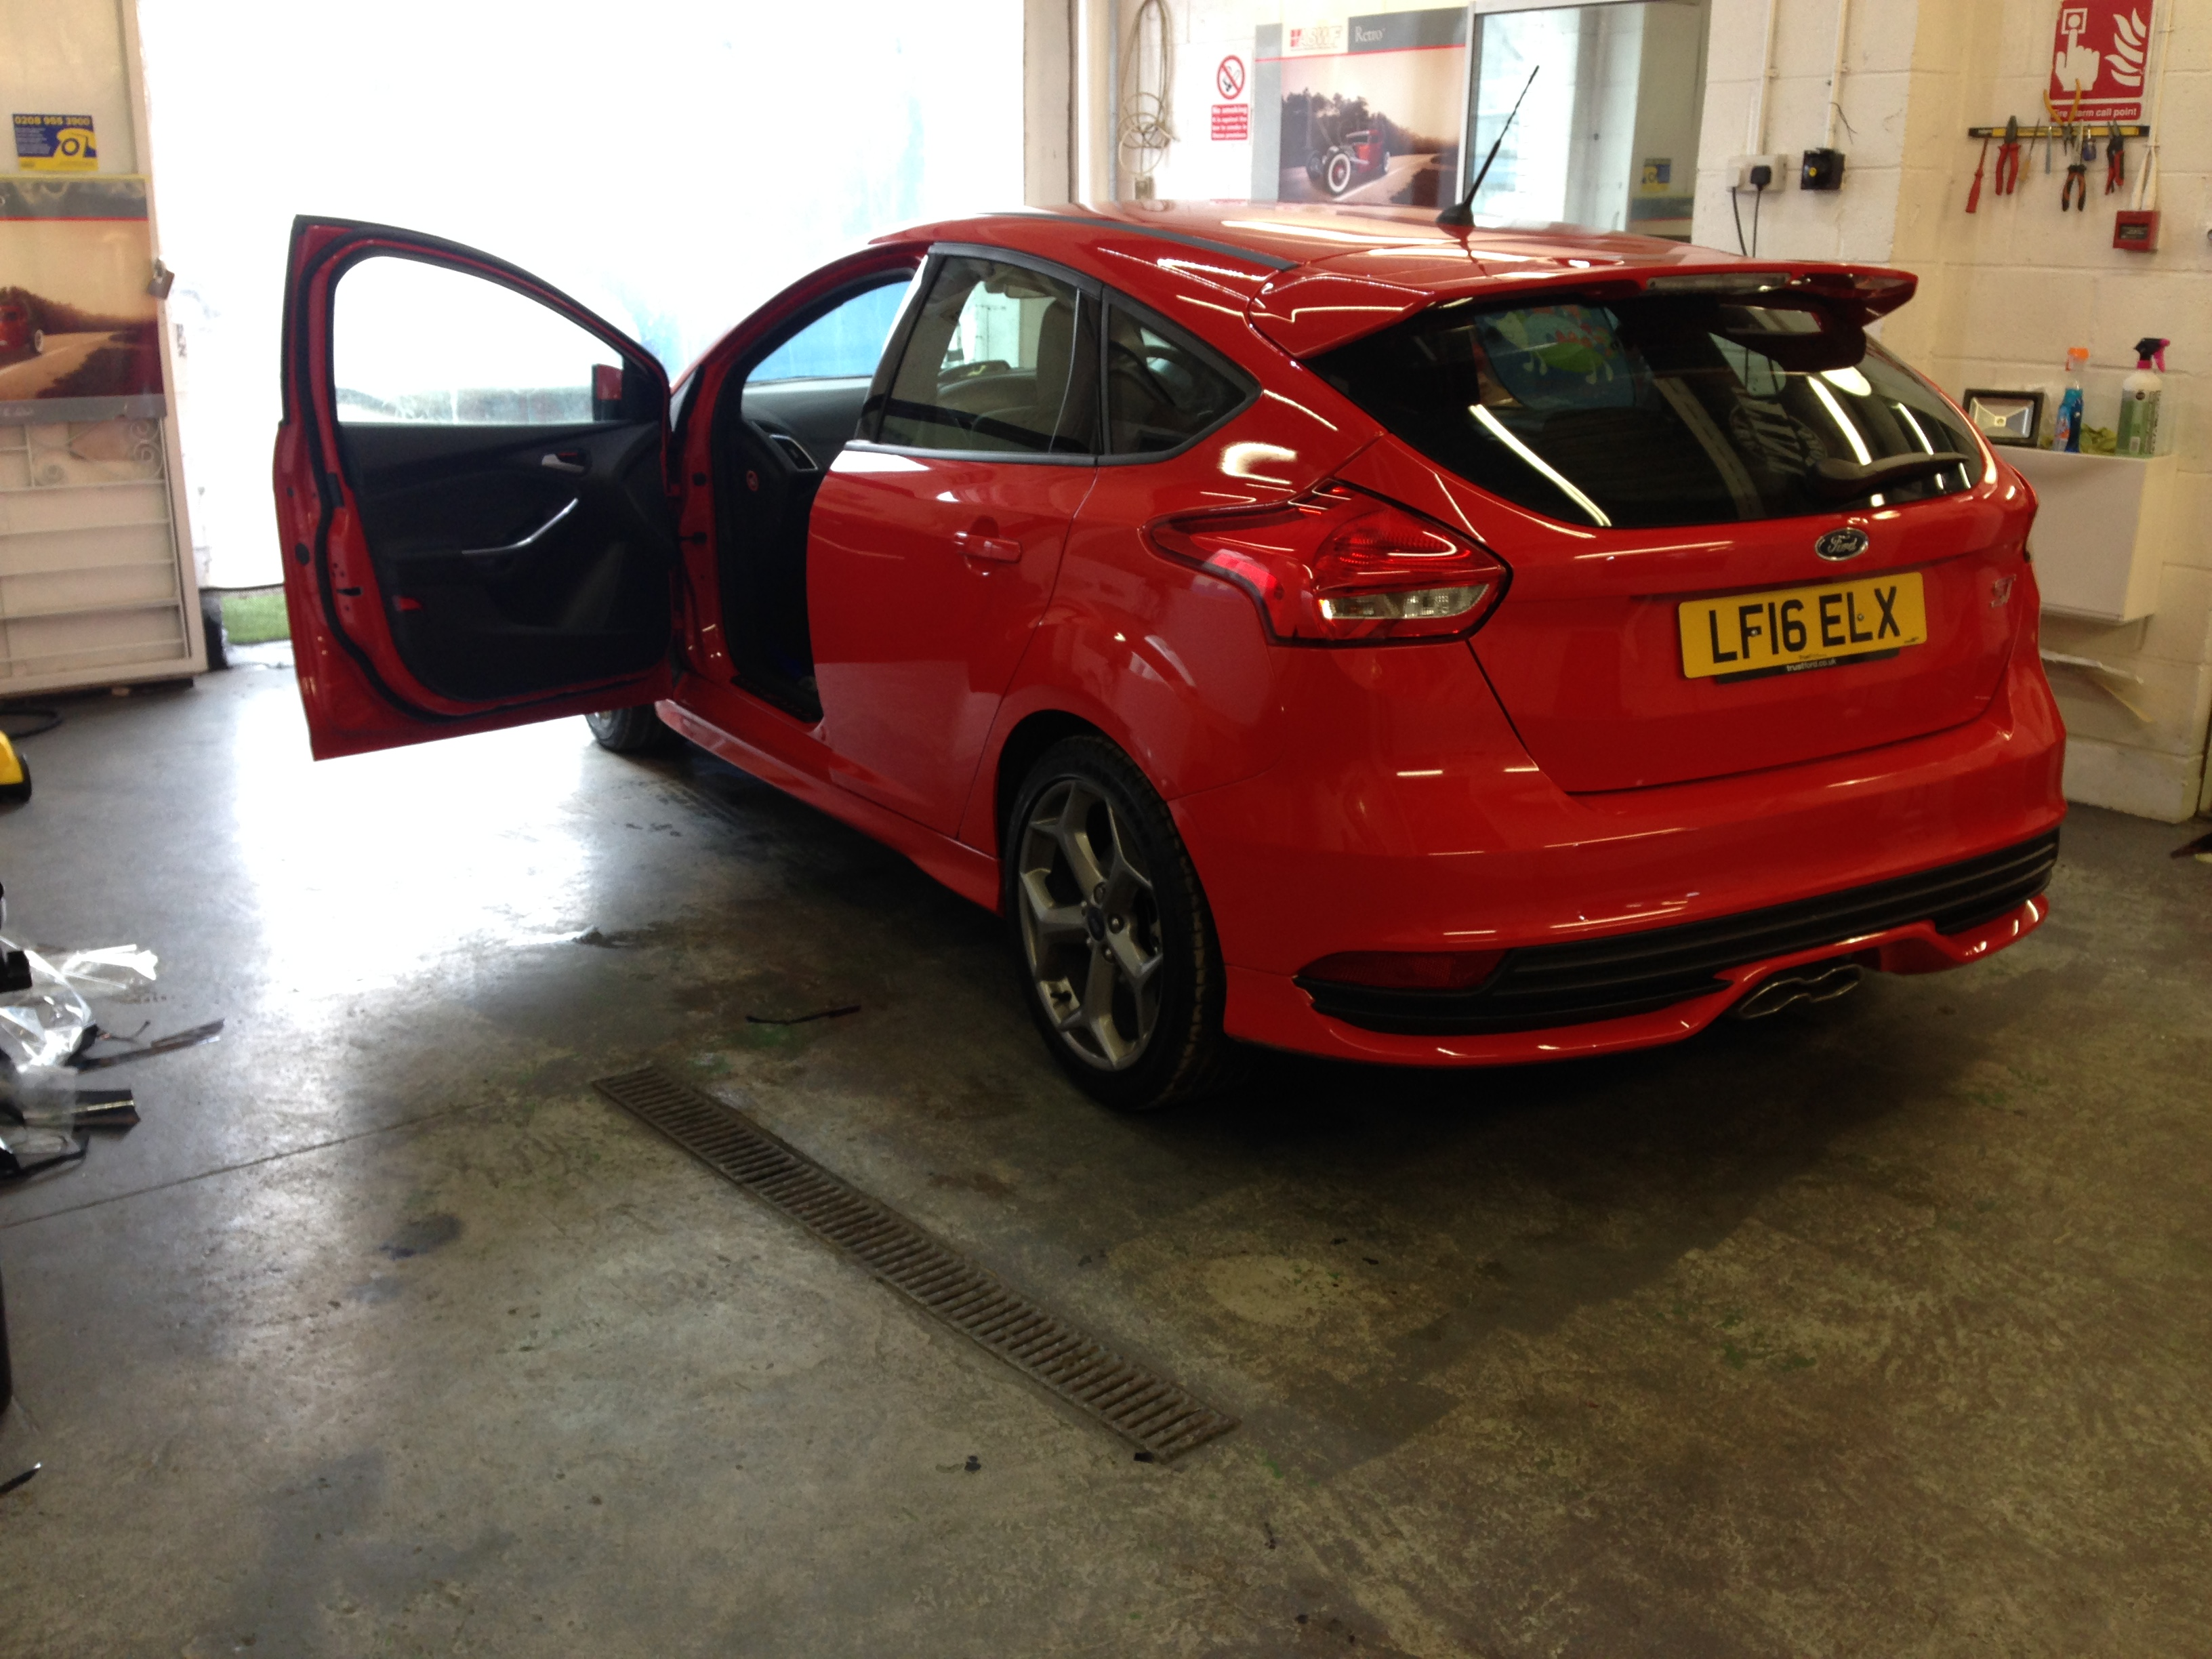 #tinting #ford #fordst #st #hatchback #carwindowtinting #greenford